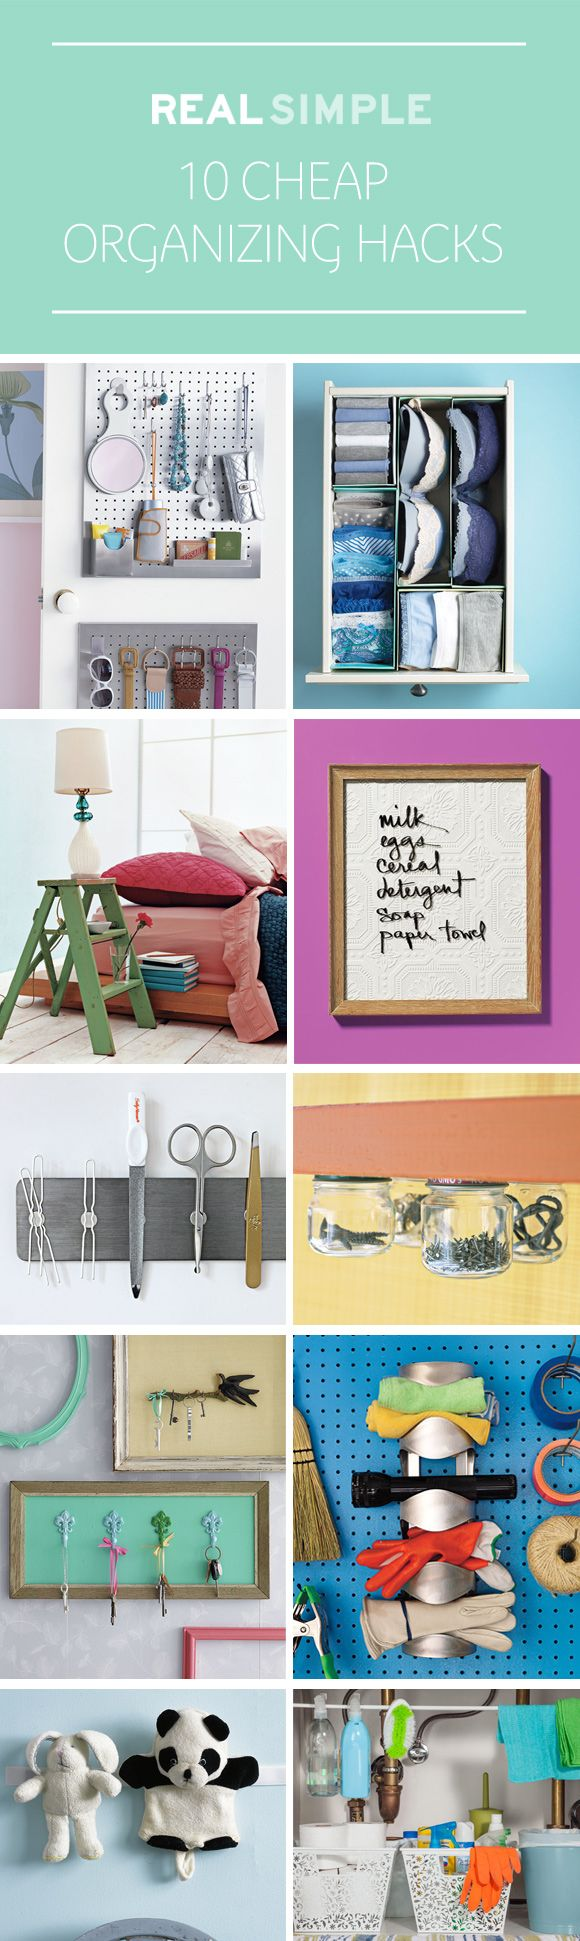 366 best images about storage ideas on pinterest storage Cheap and easy organizing ideas